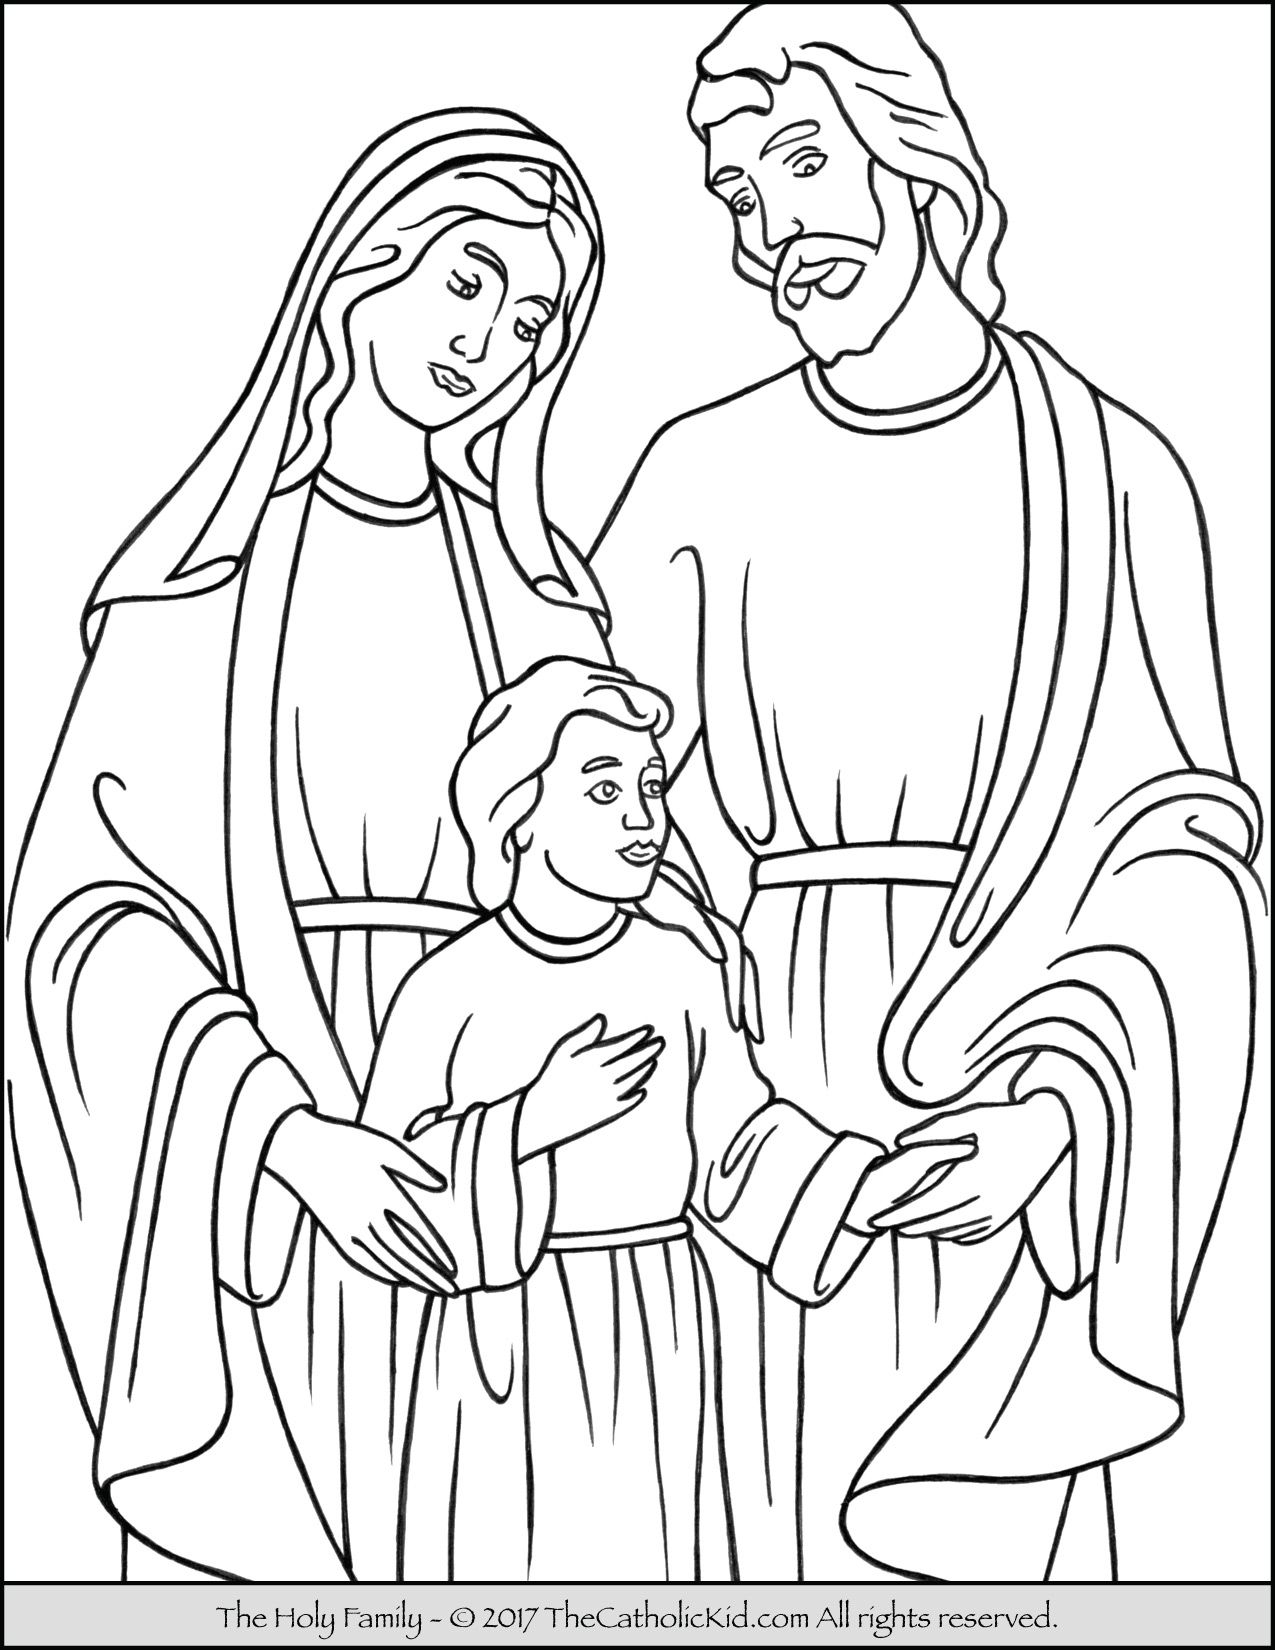 Holy Family Coloring Page Thecatholickid Com Family Coloring